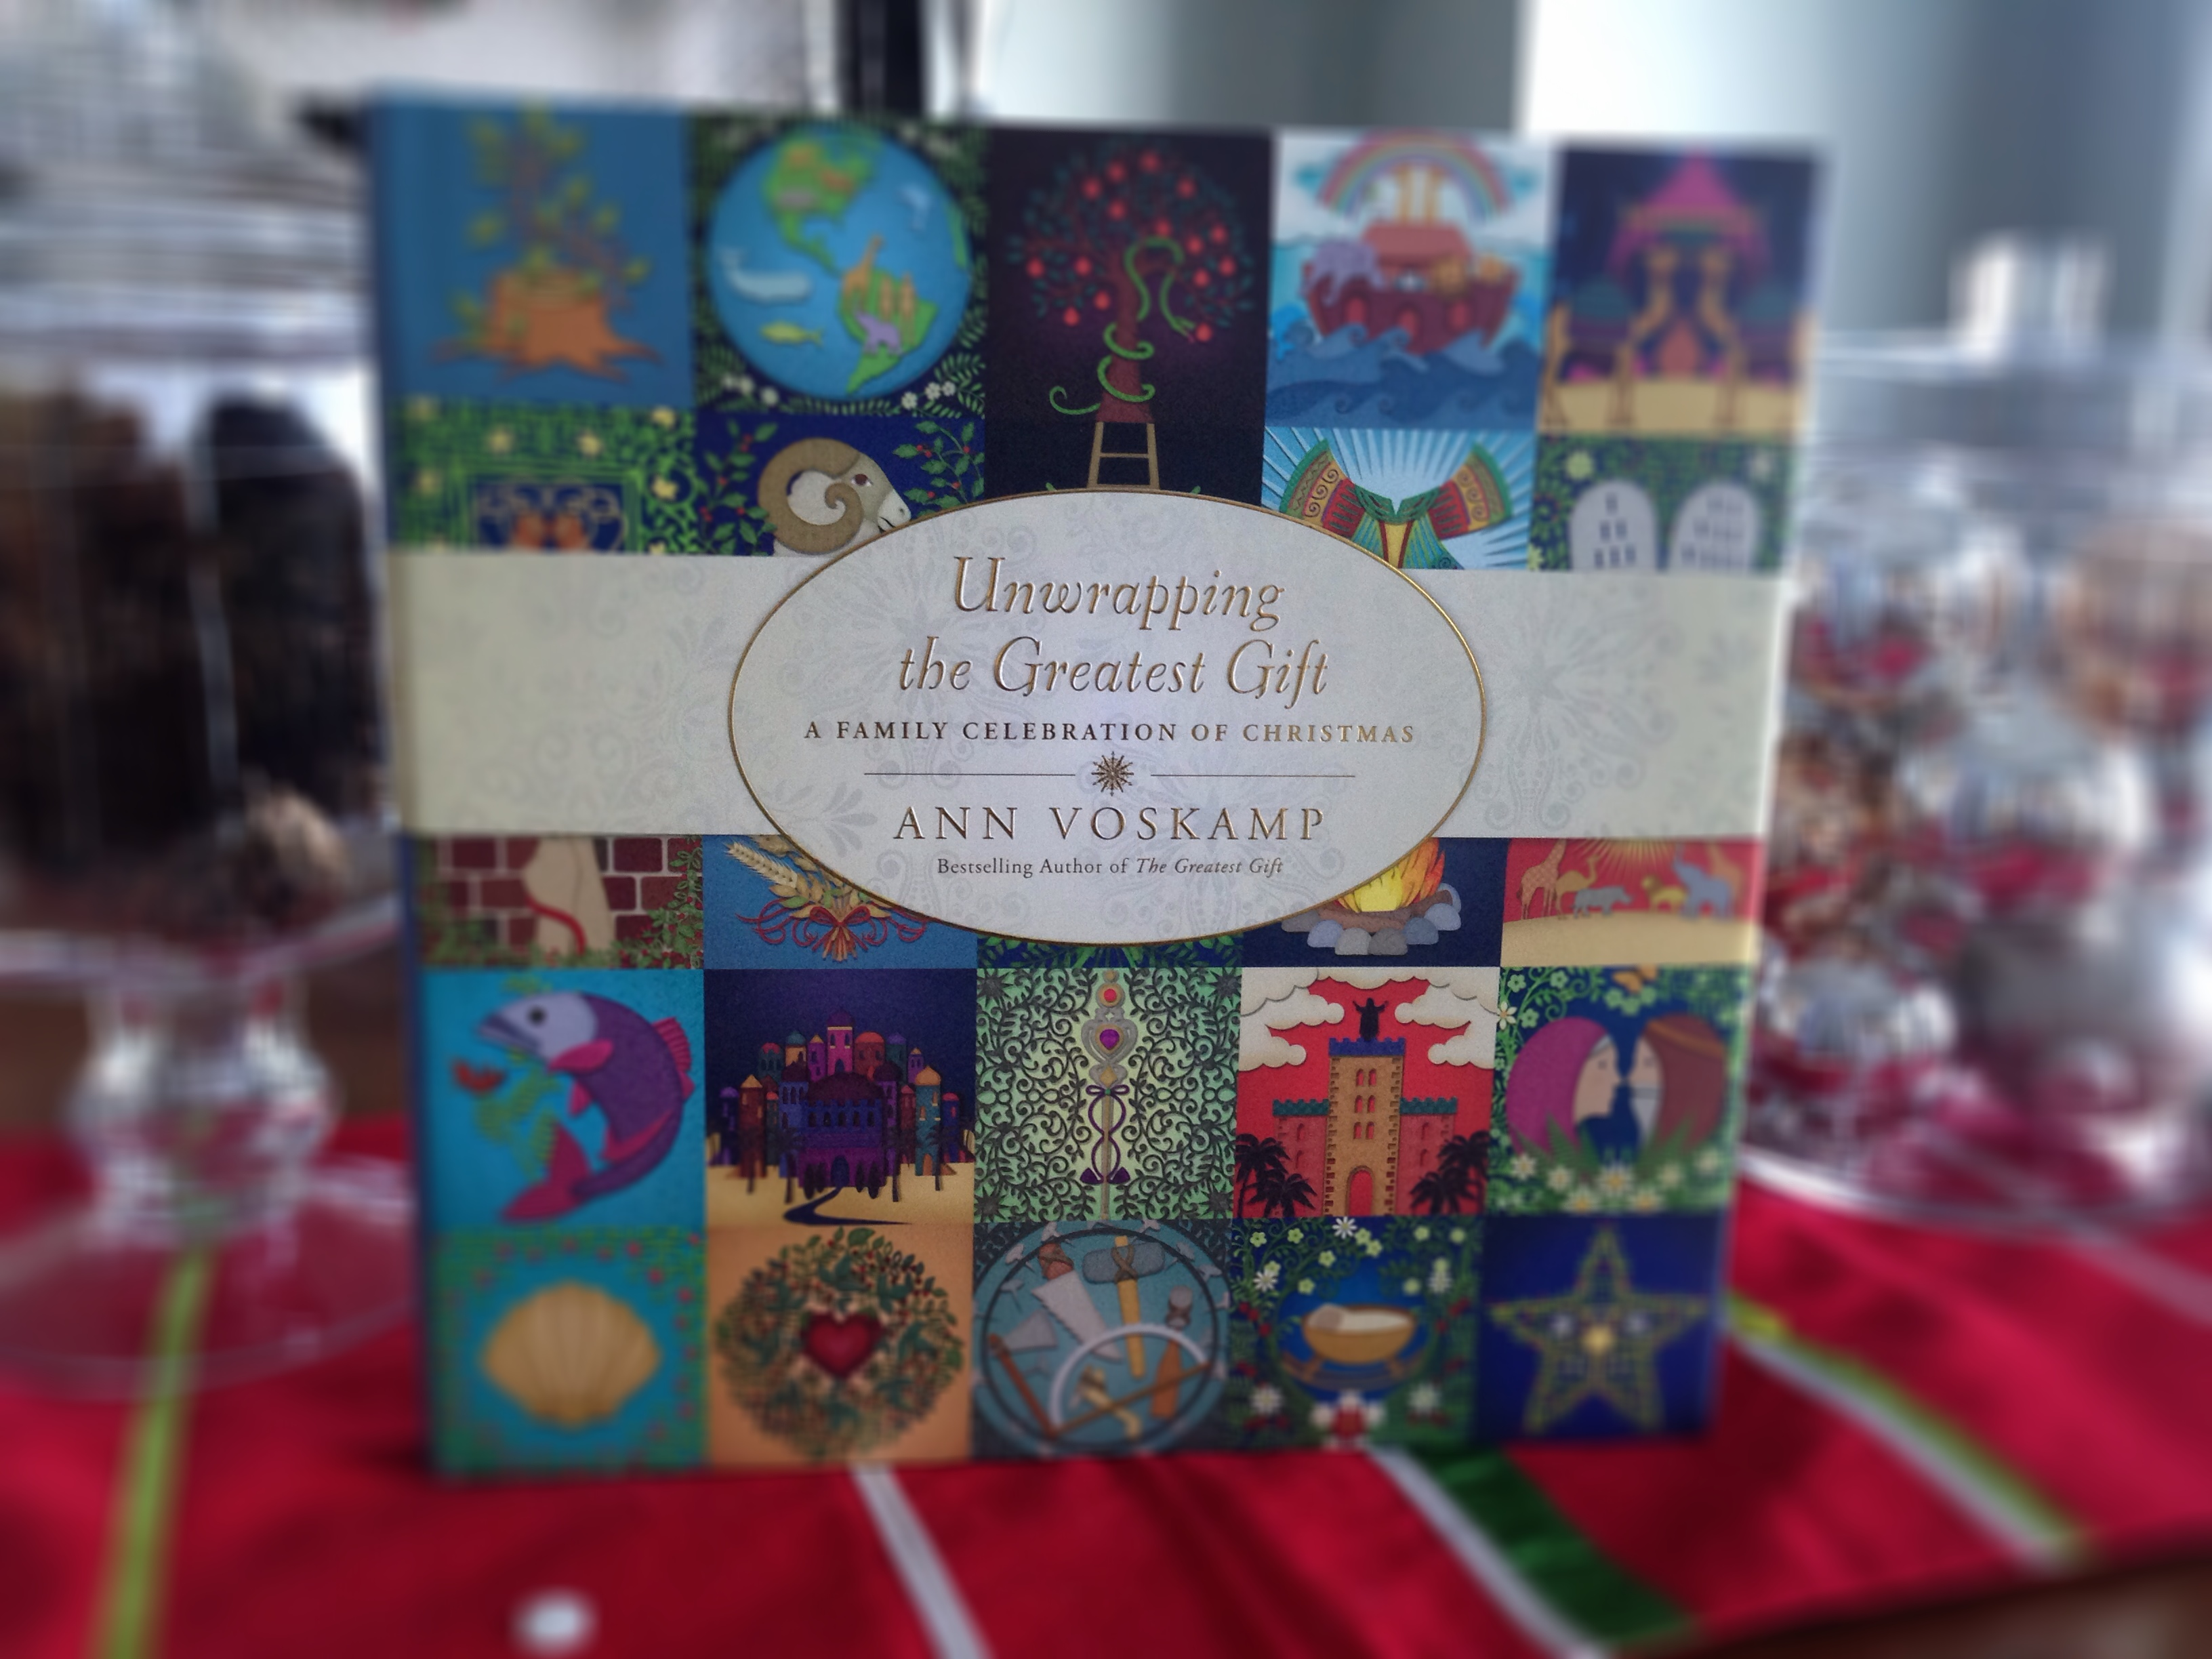 The Greatest Gift and Unwrapping the Greatest Gift by Ann Voskamp ...